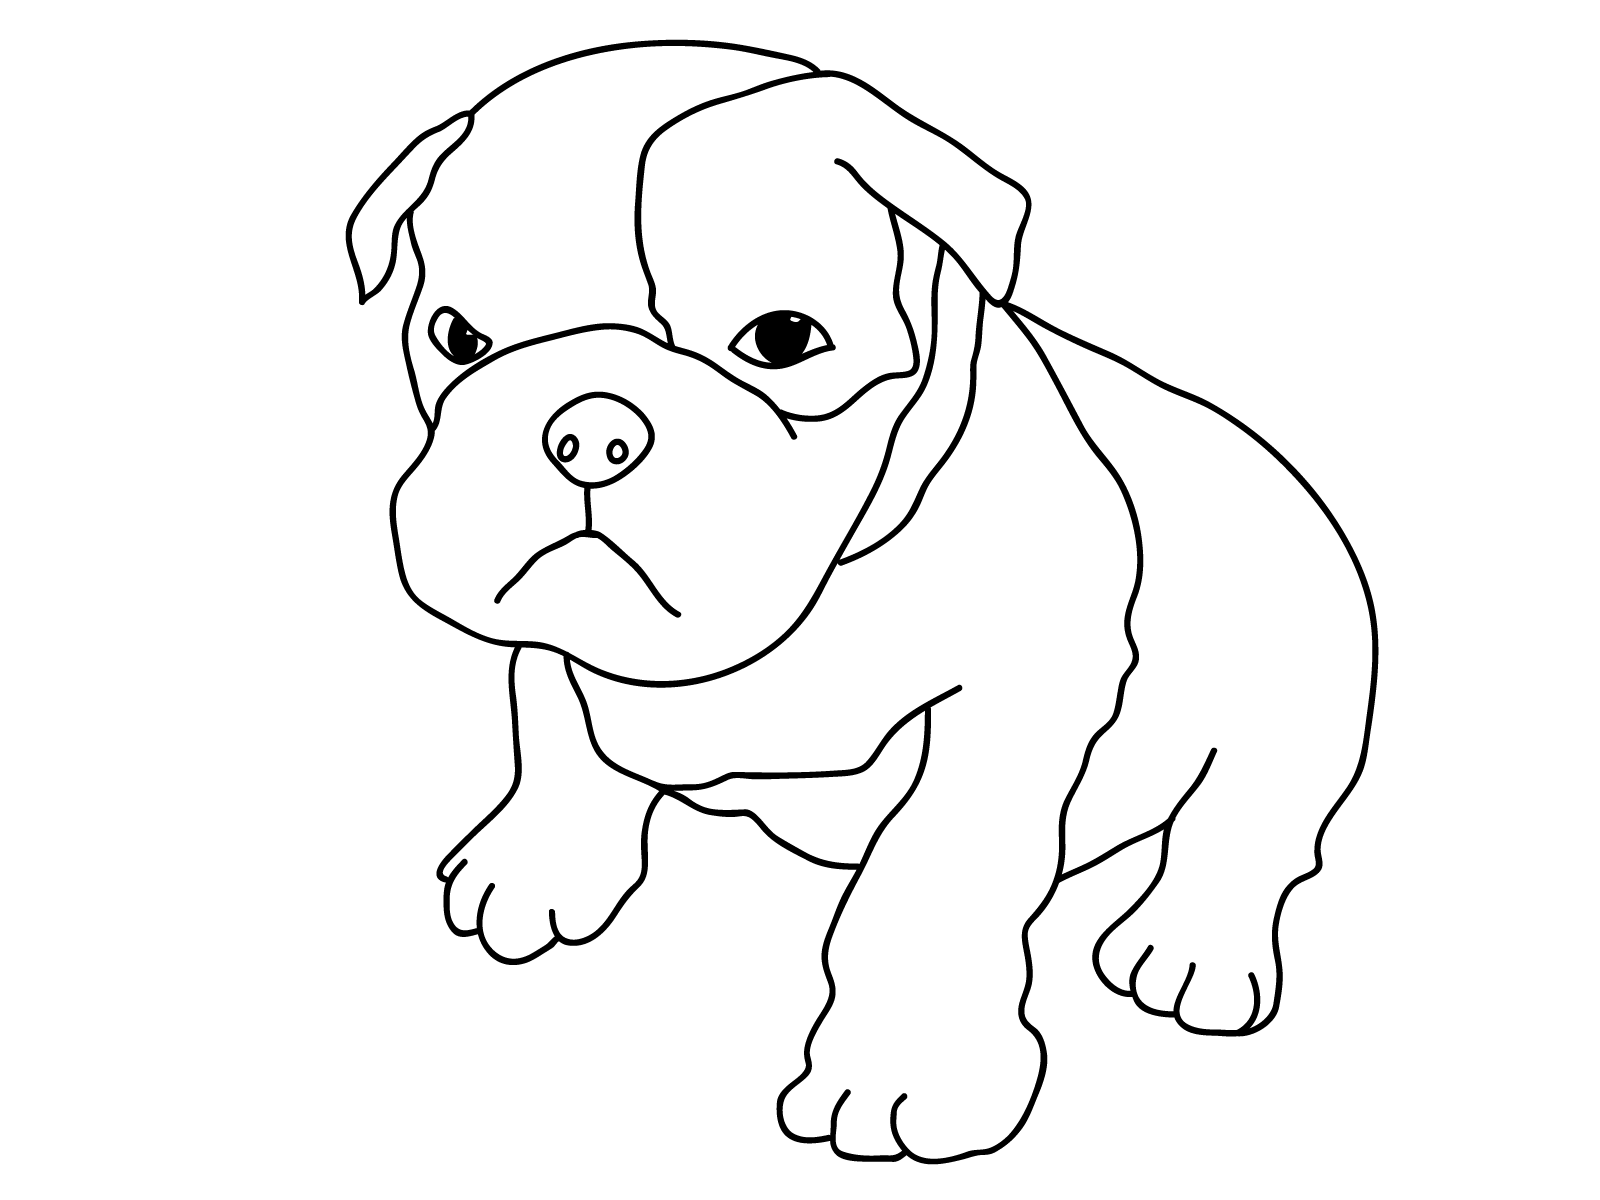 coloring sheets of dogs dog coloring pages 2018 dr odd sheets coloring dogs of